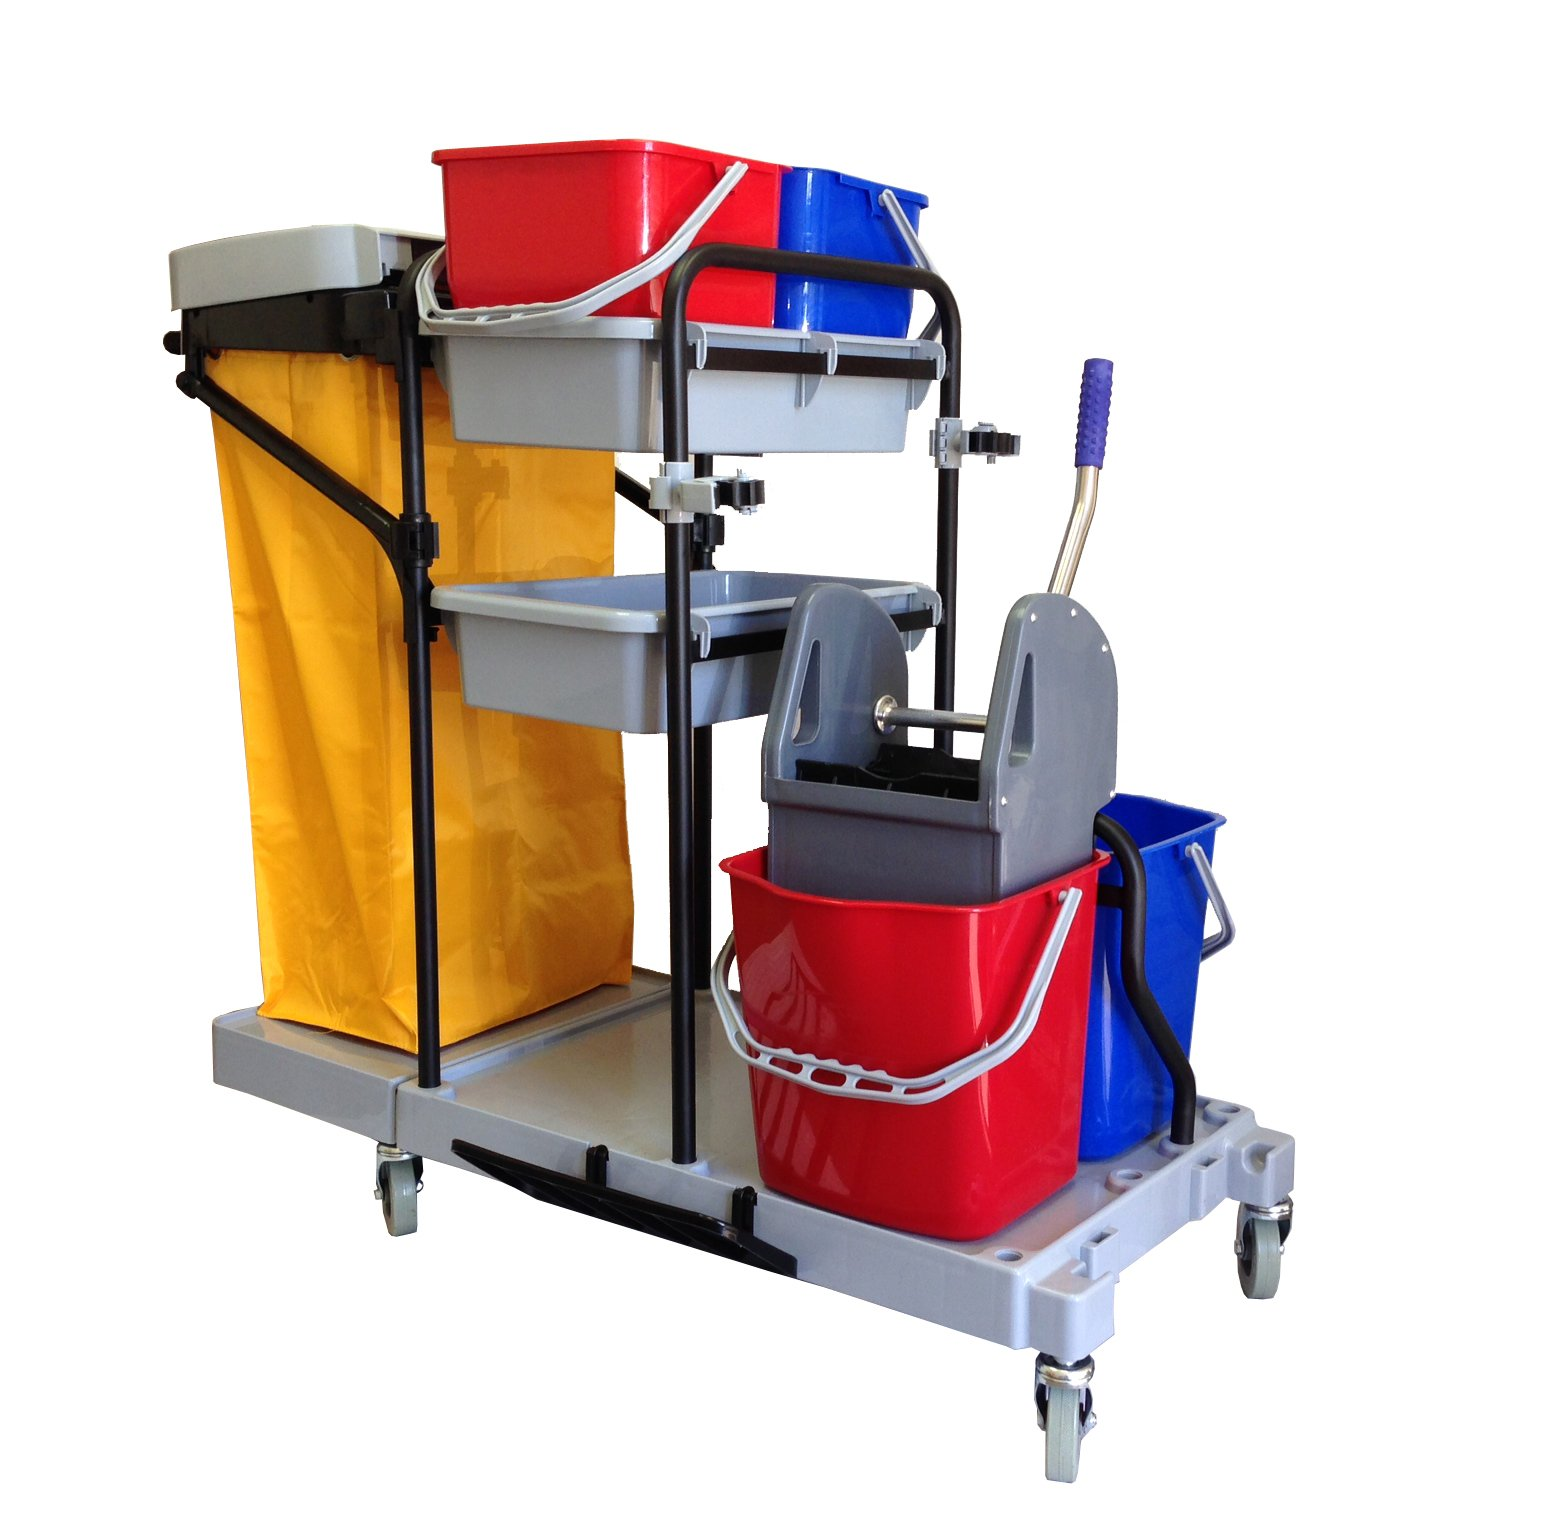 Industrial Housekeeping Janitorial Cart 4 Buckets 1 Wringer 1 Vinyl Bag AF08173 by Farag Janitorial